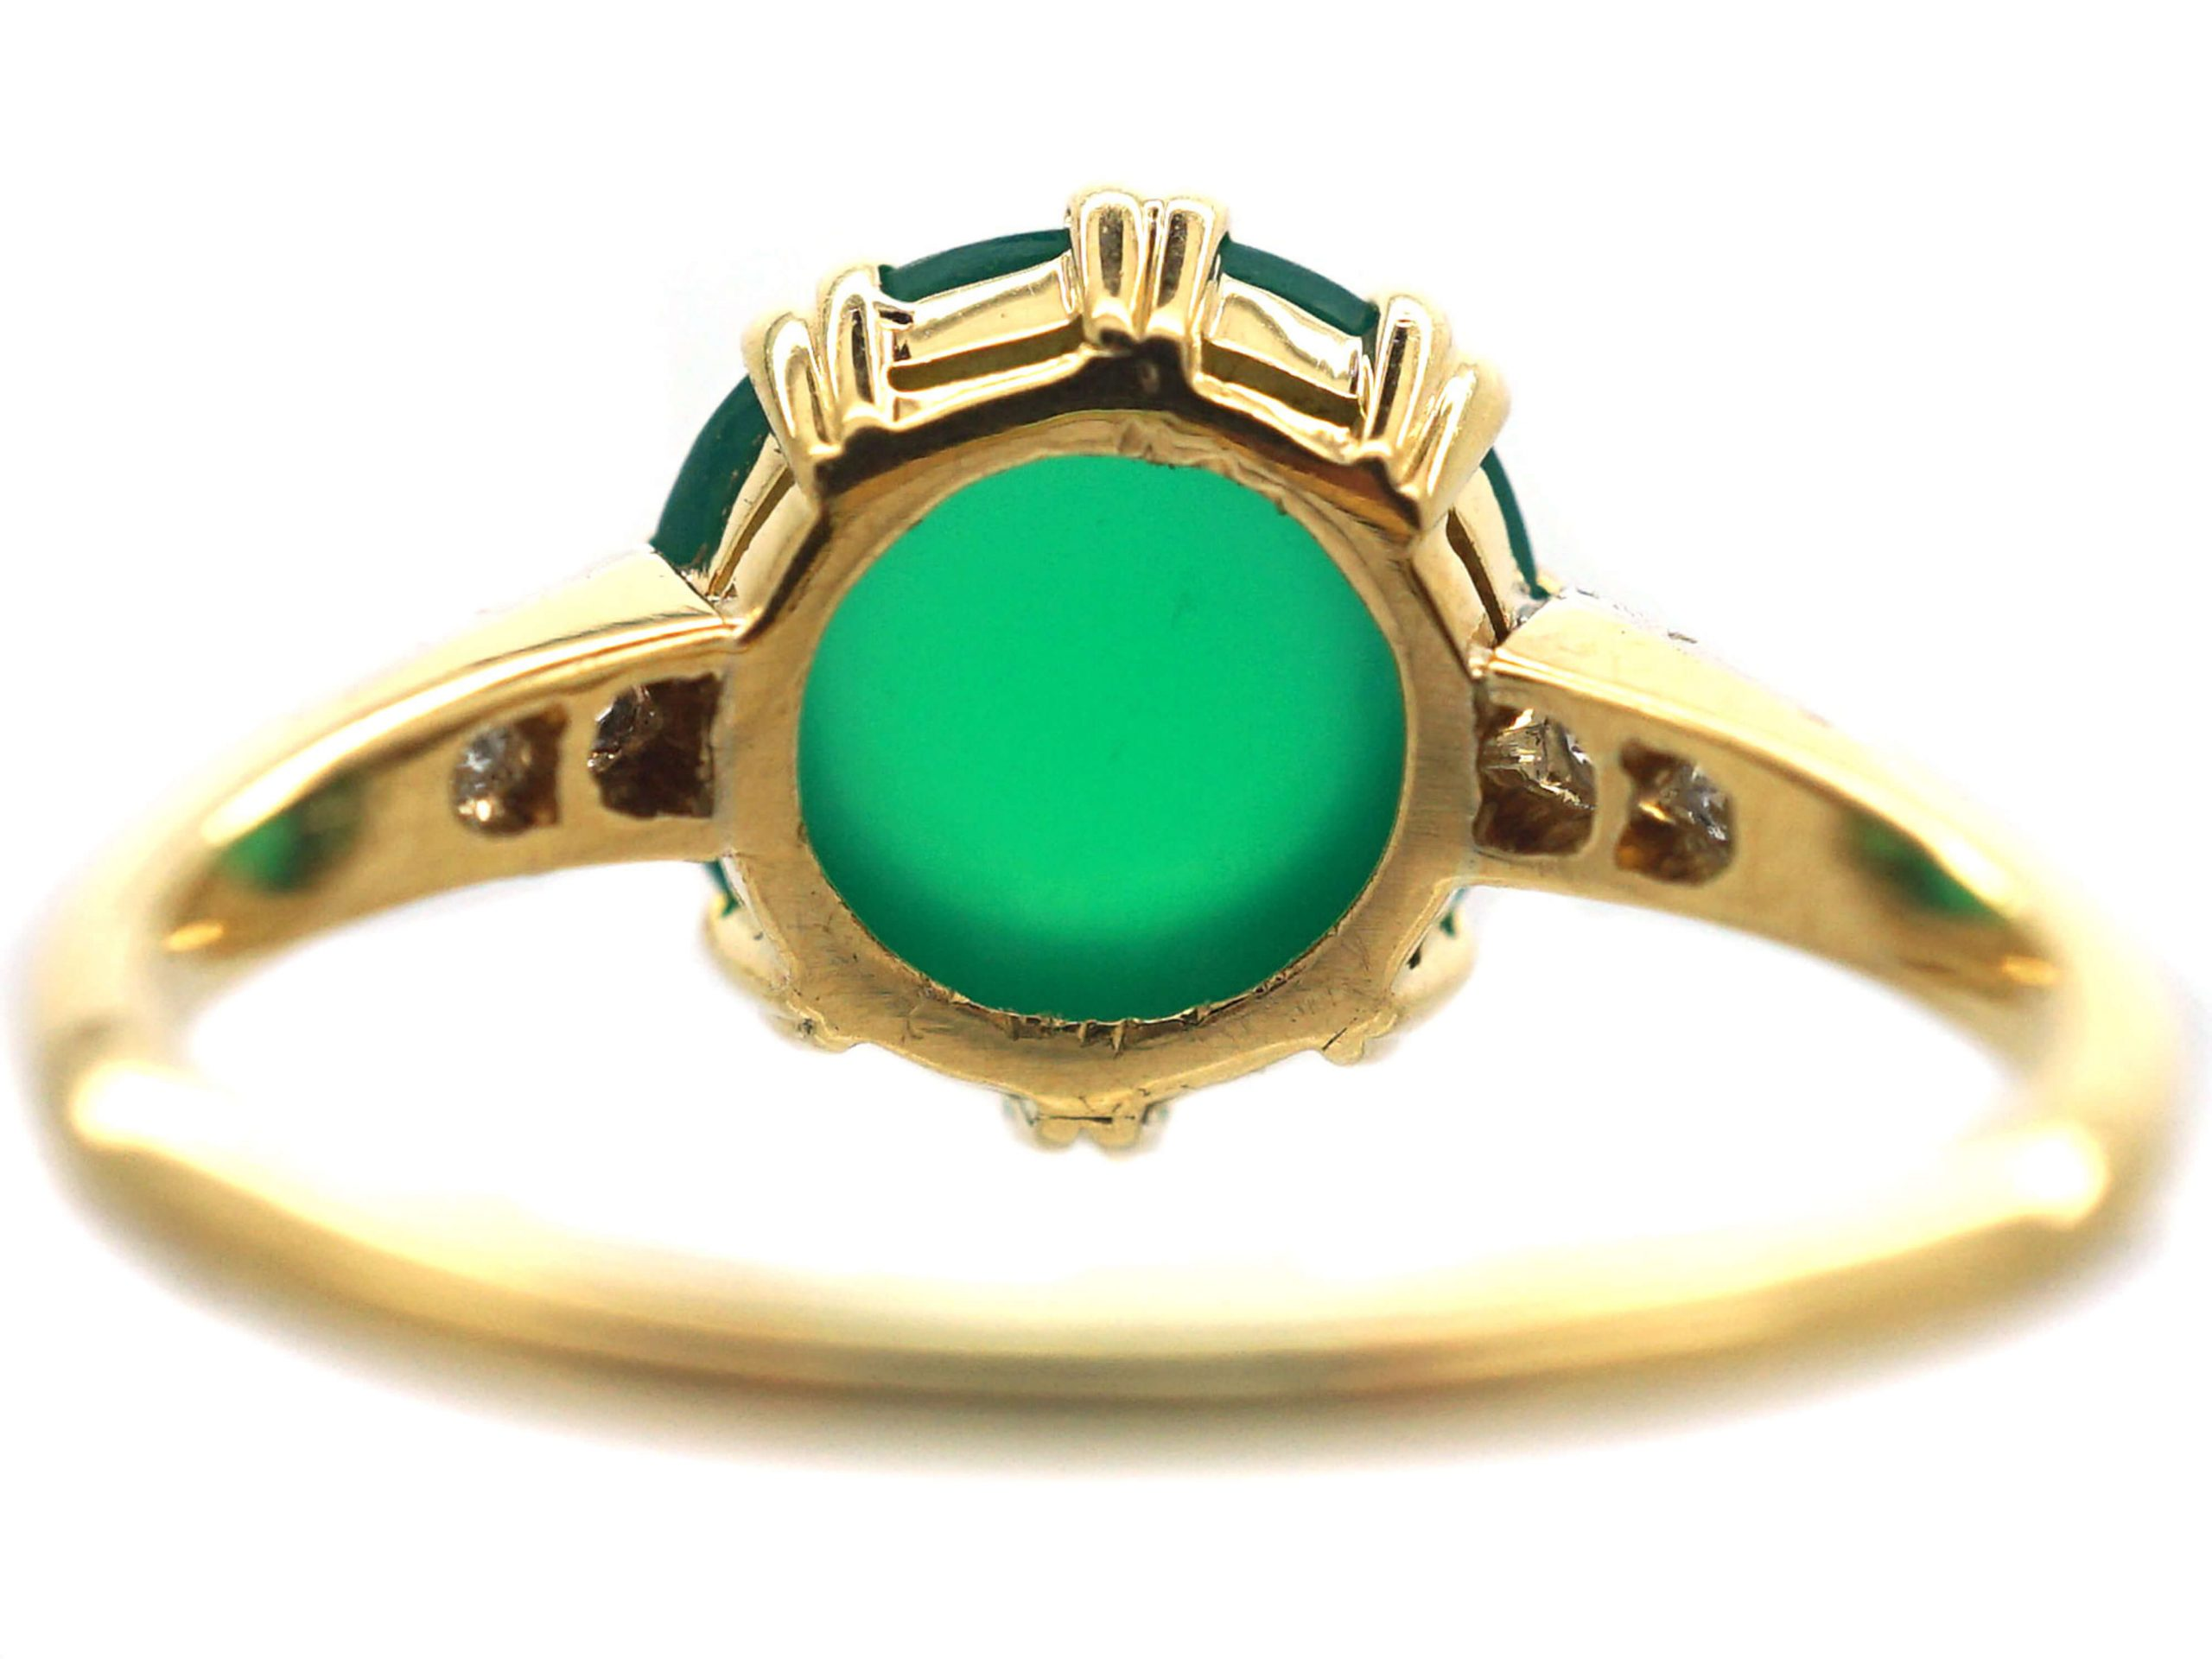 Art Deco 15ct Gold & Platinum Ring set with Green Chalcedony with Diamond set Shoulders